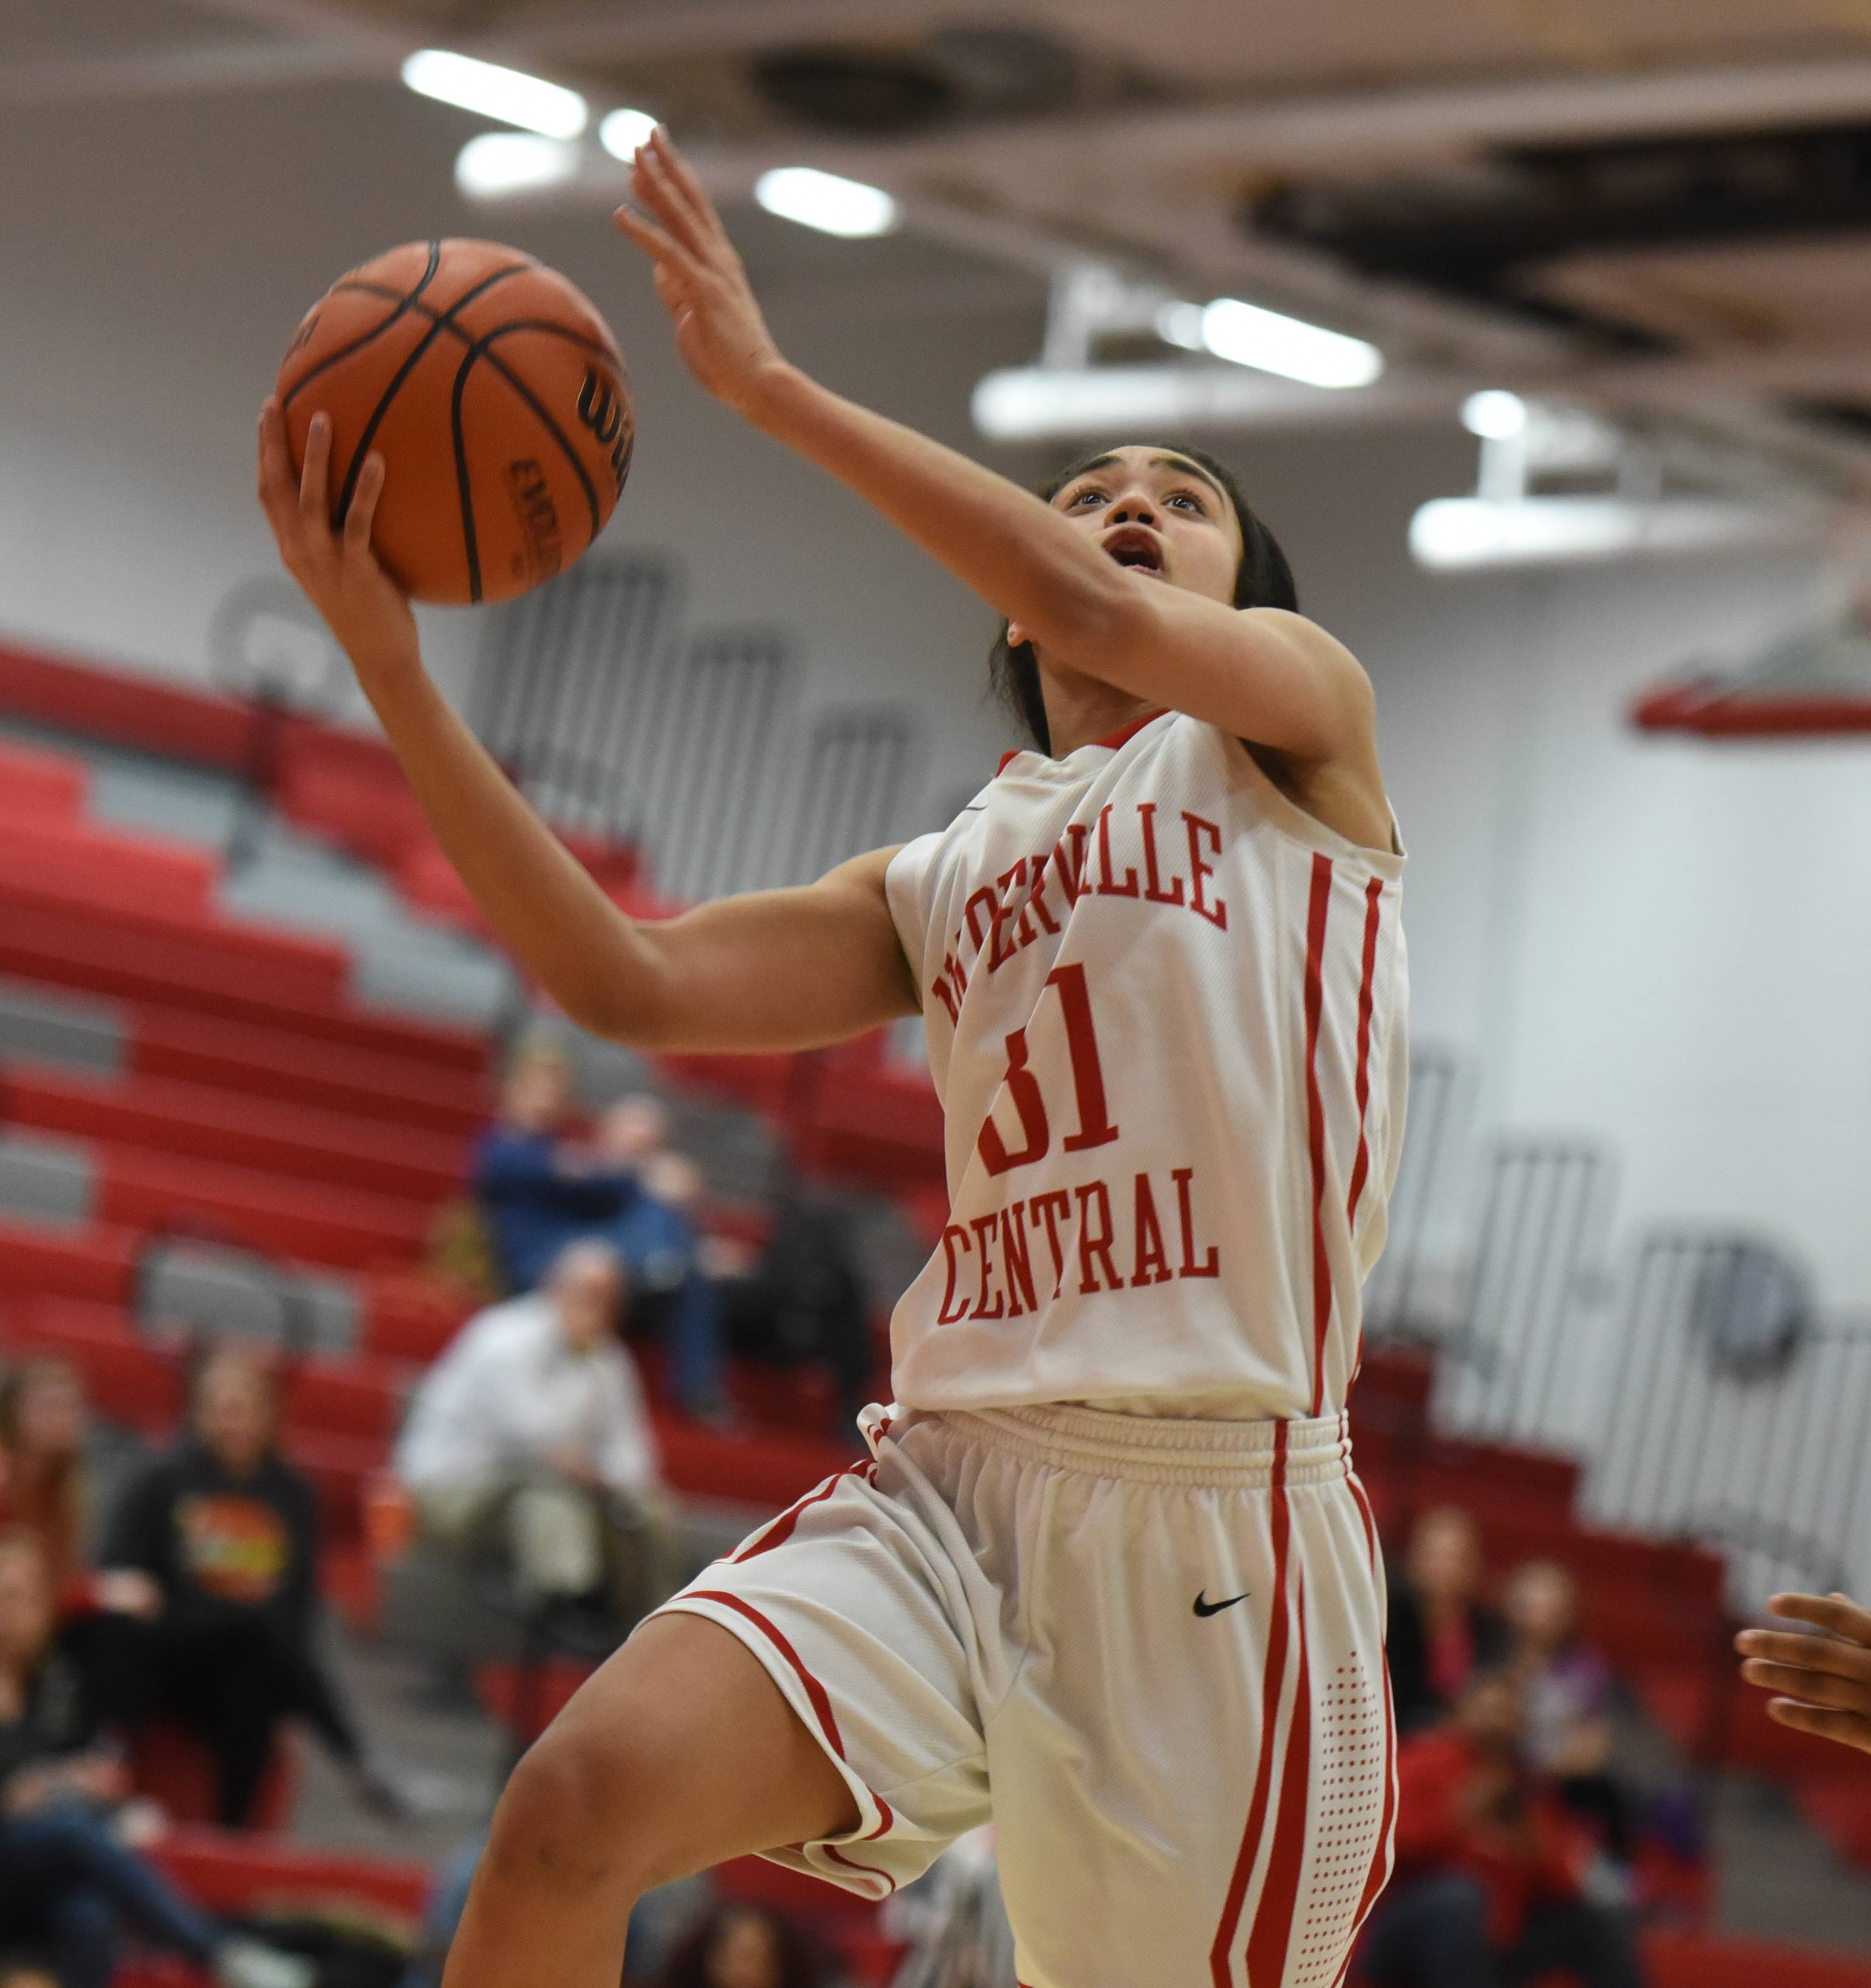 Naperville Central's Mia Lakstigala (31) takes one to the net during the Metea Valley at Naperville Central girls basketball game Thursday.